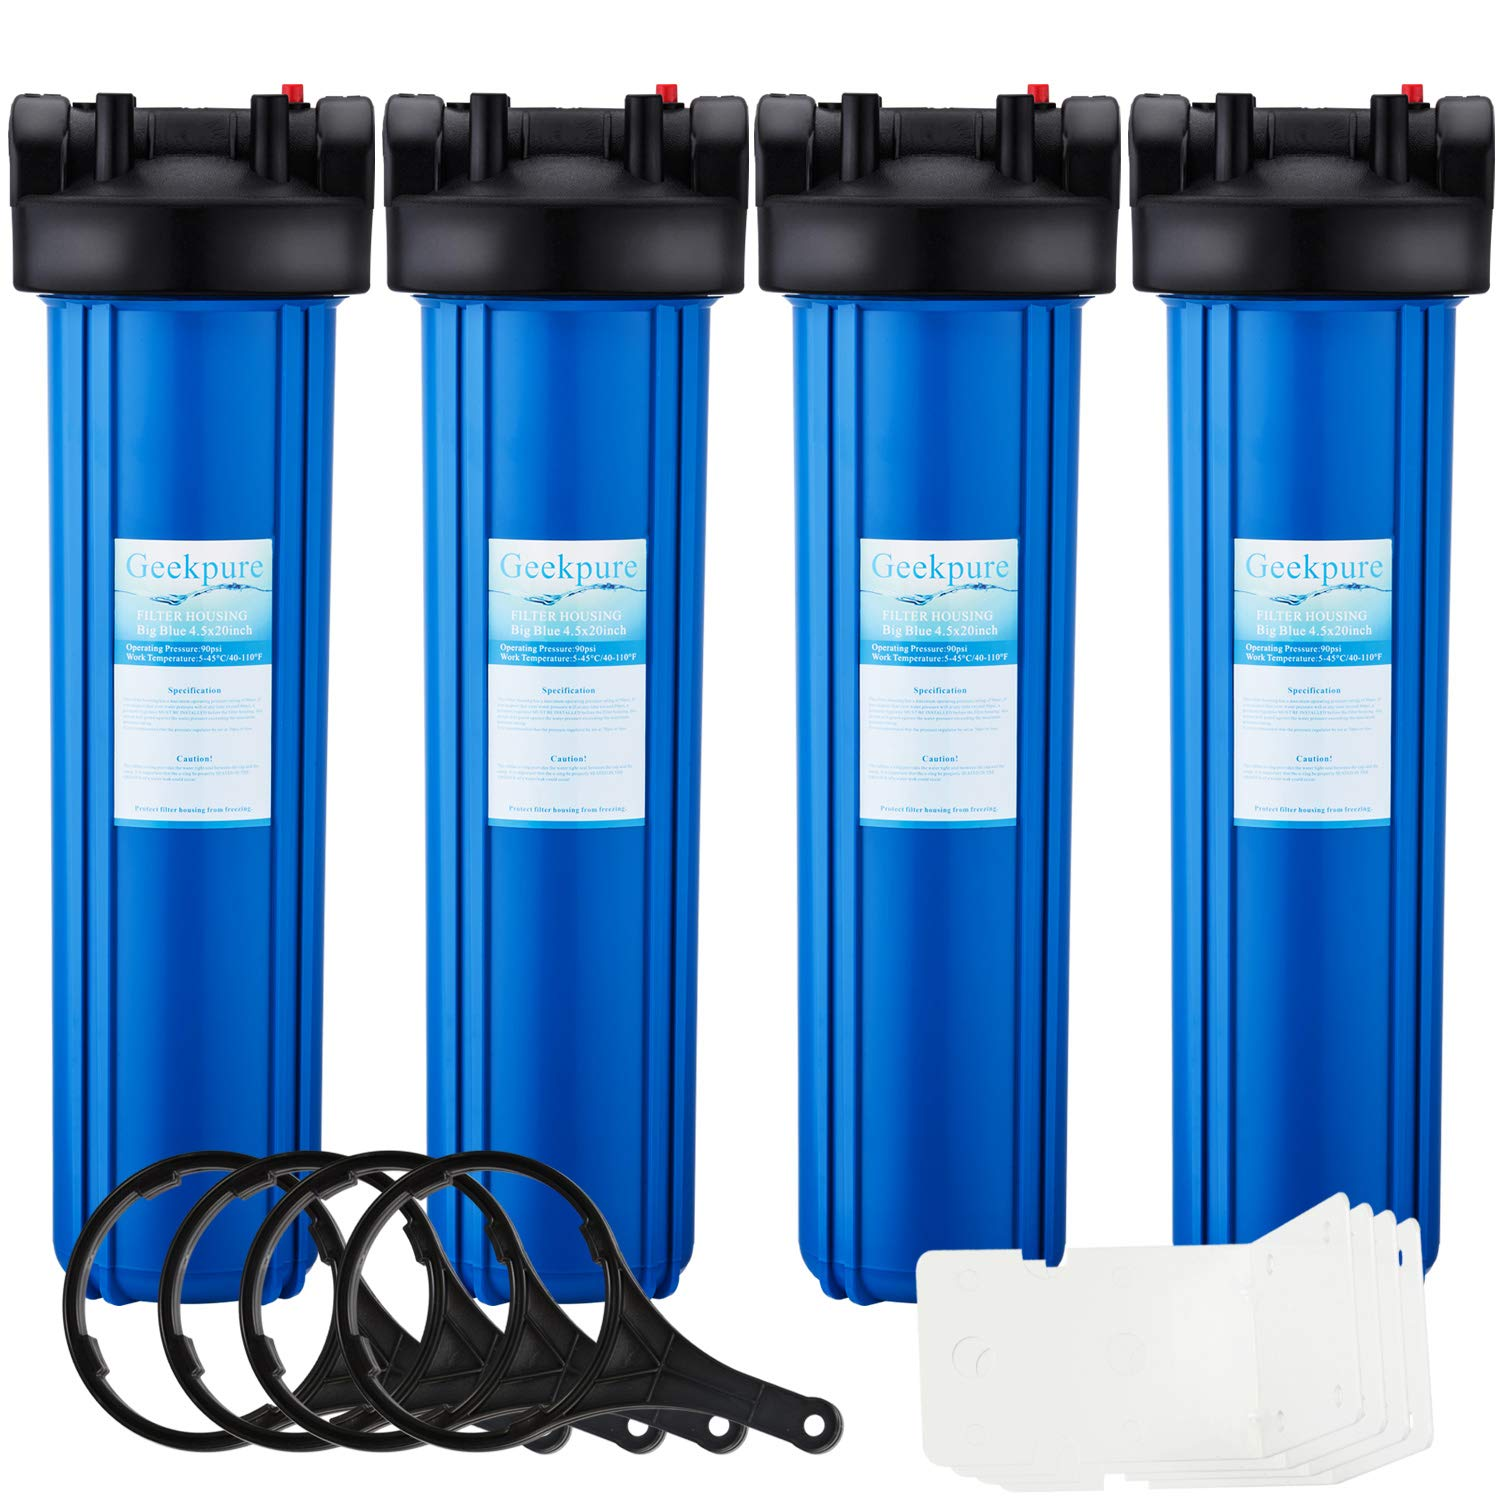 Geekpure Whole House Big Blue Water Filter Housing 1-Inch Outlet/Inlet with Wrench and Bracket -4.5 Inch x 20 Inch -Blue Color(Pack of 4) by Geekpure